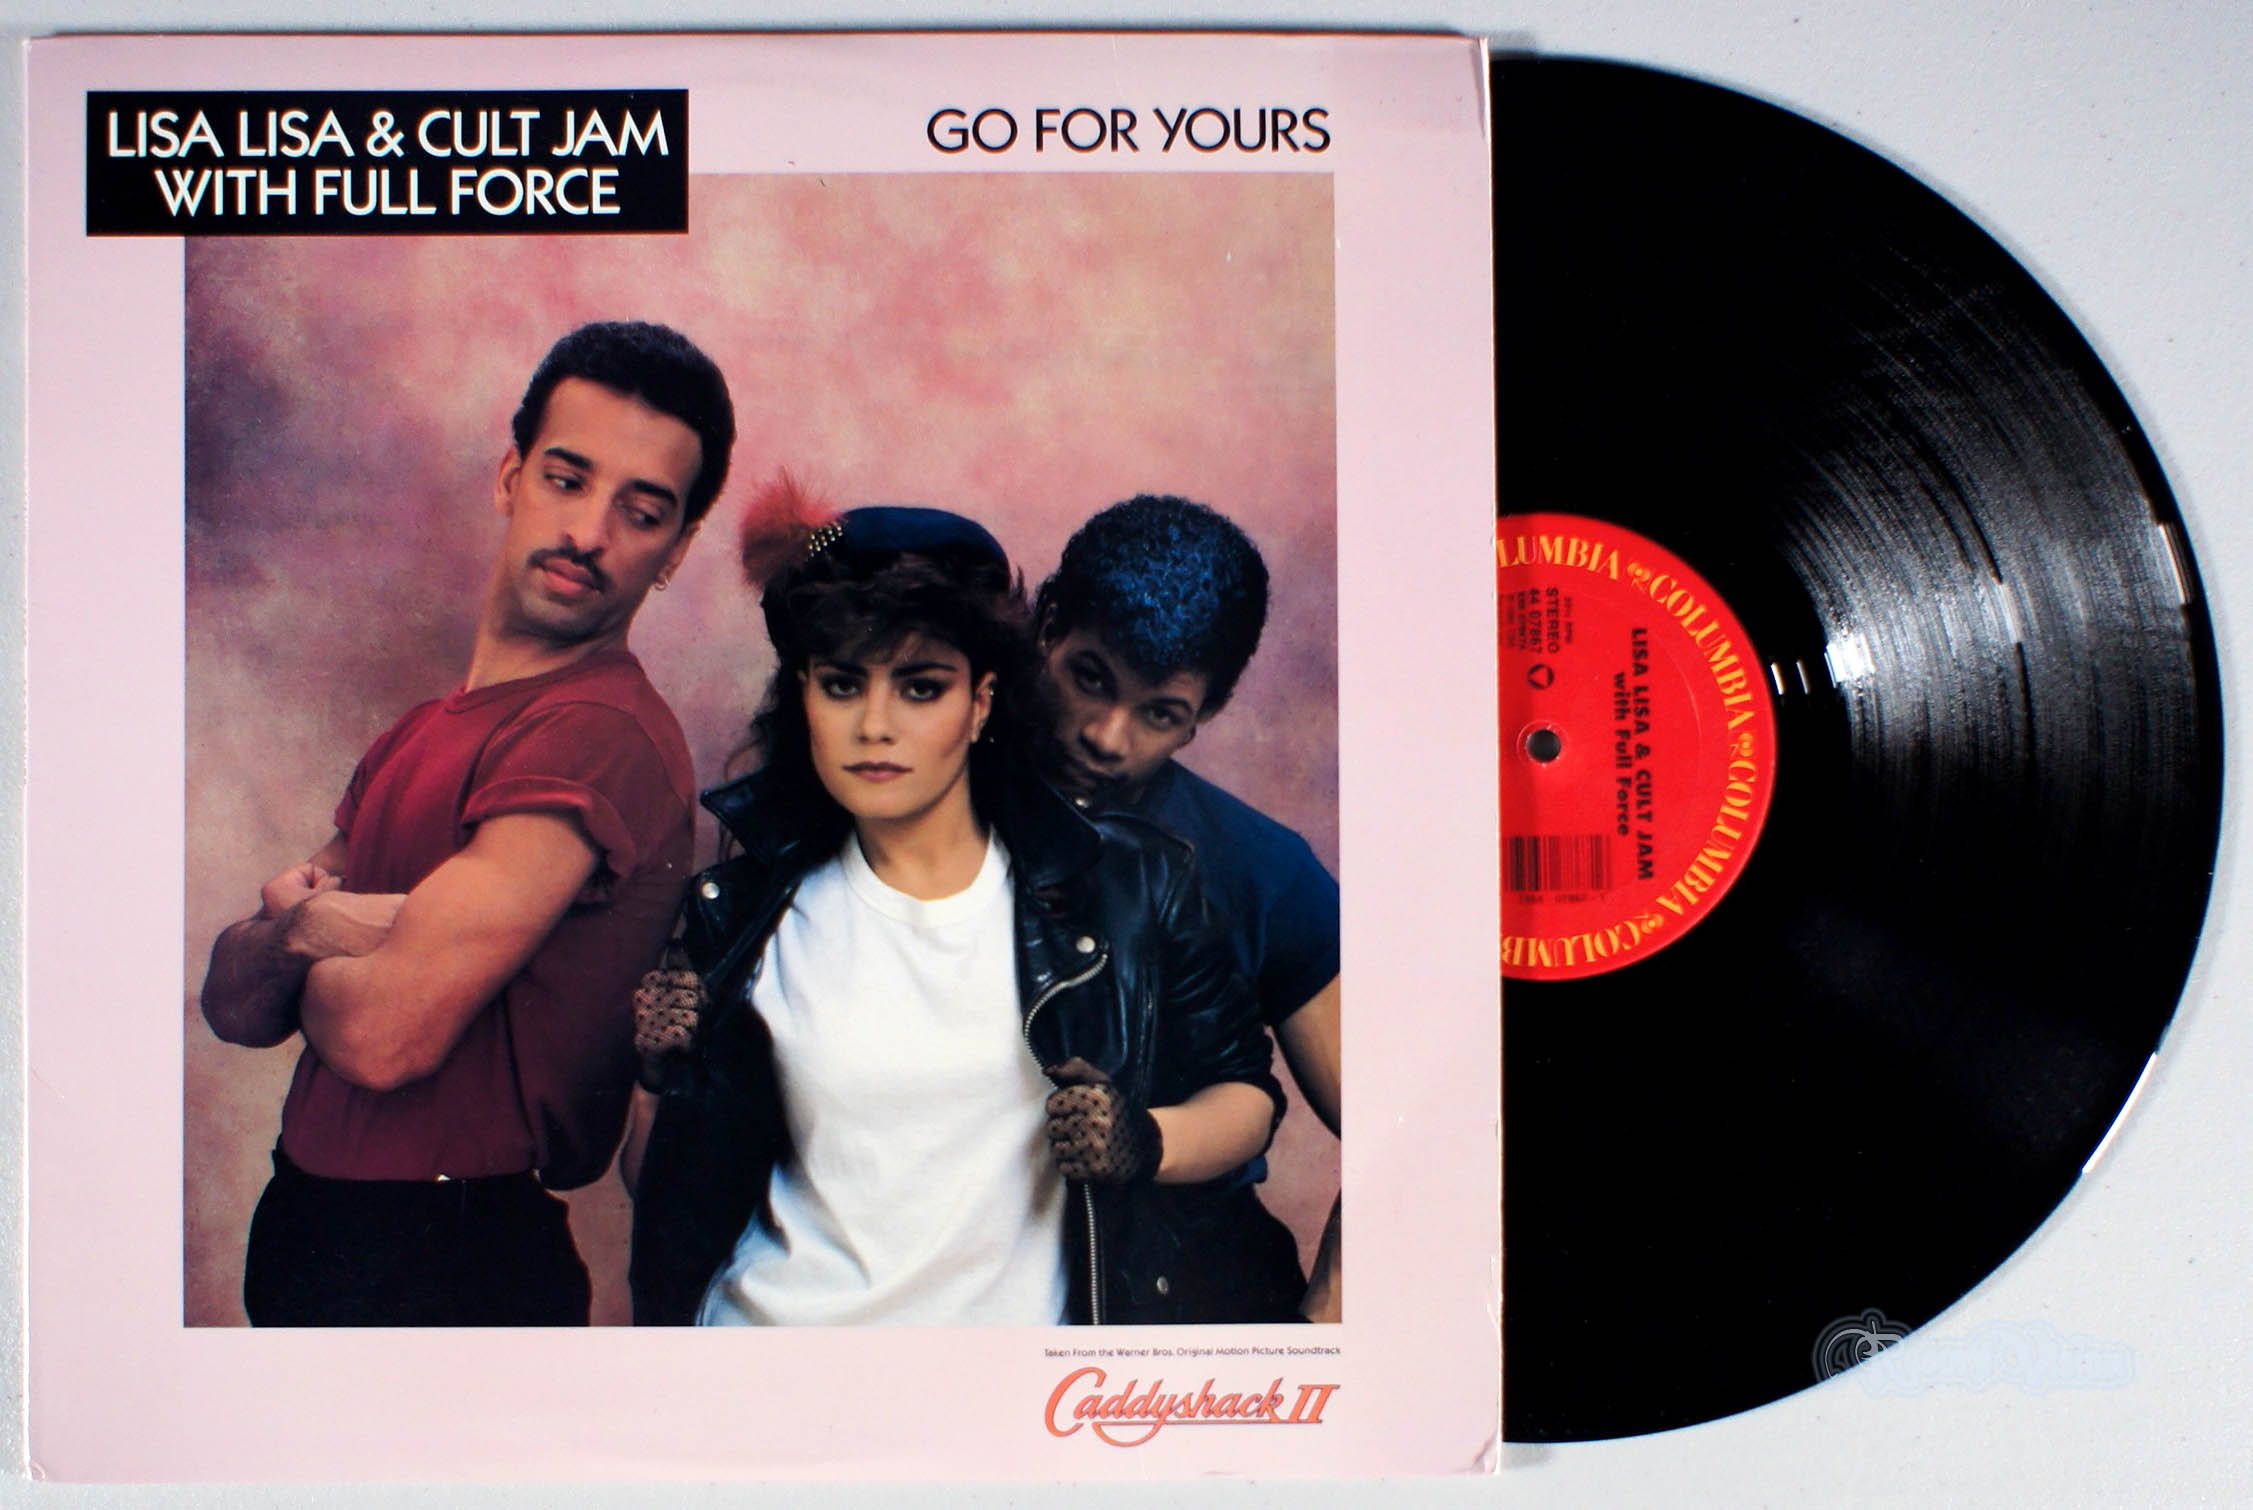 LISA LISA AND CULT JAM - Go for Yours - 12 inch x 1